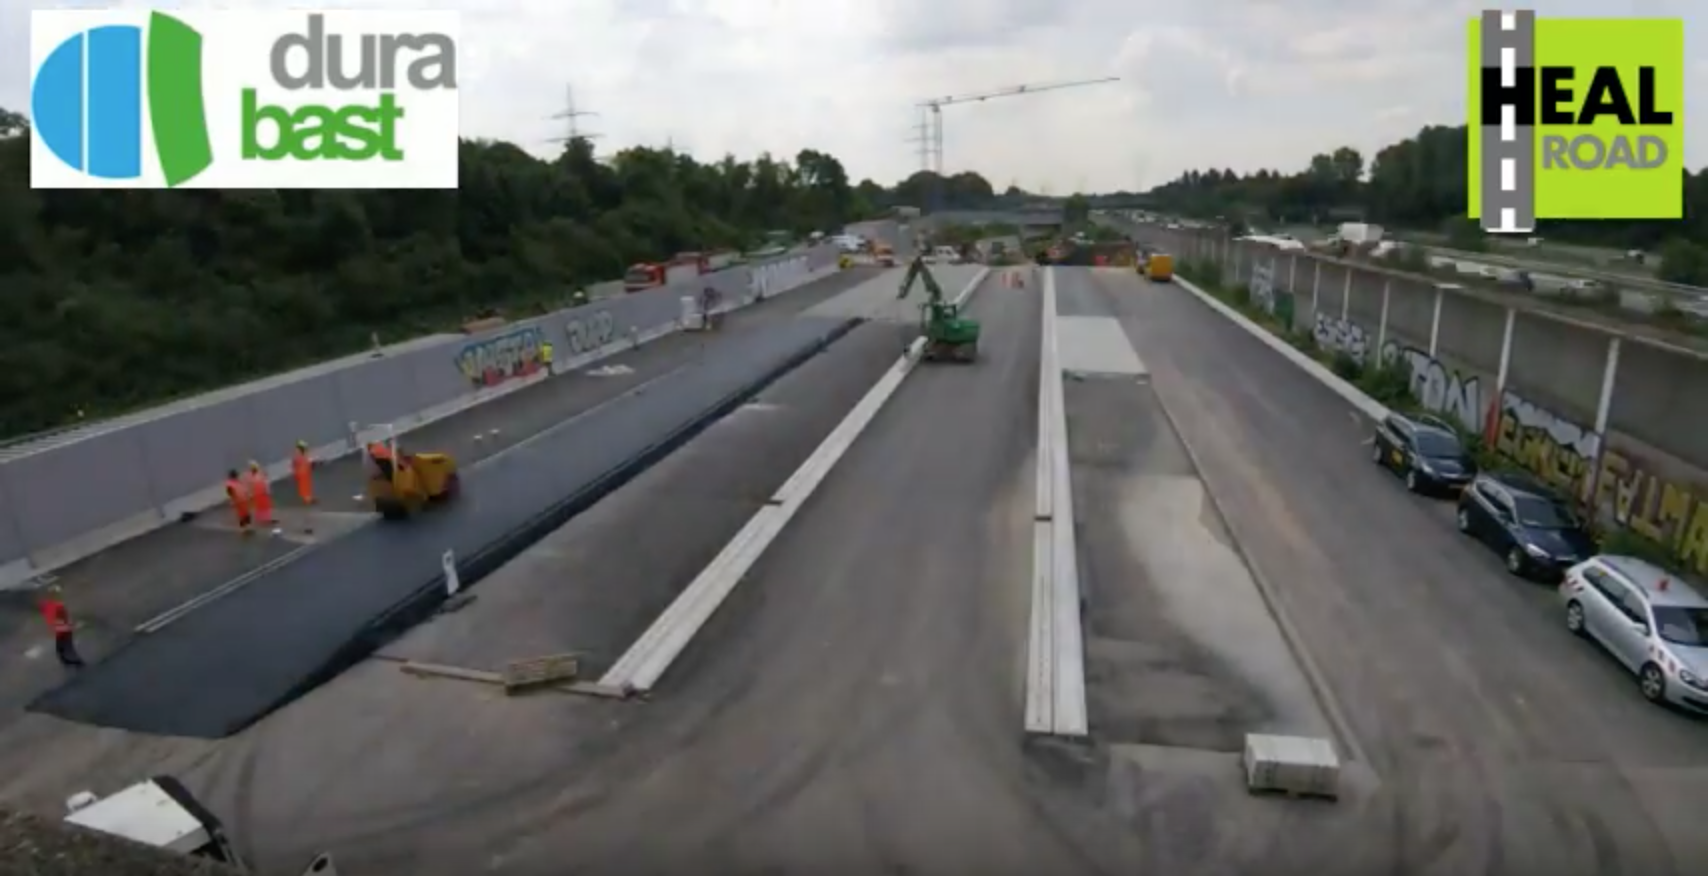 Test track construction for HEALROAD constructed in Germany